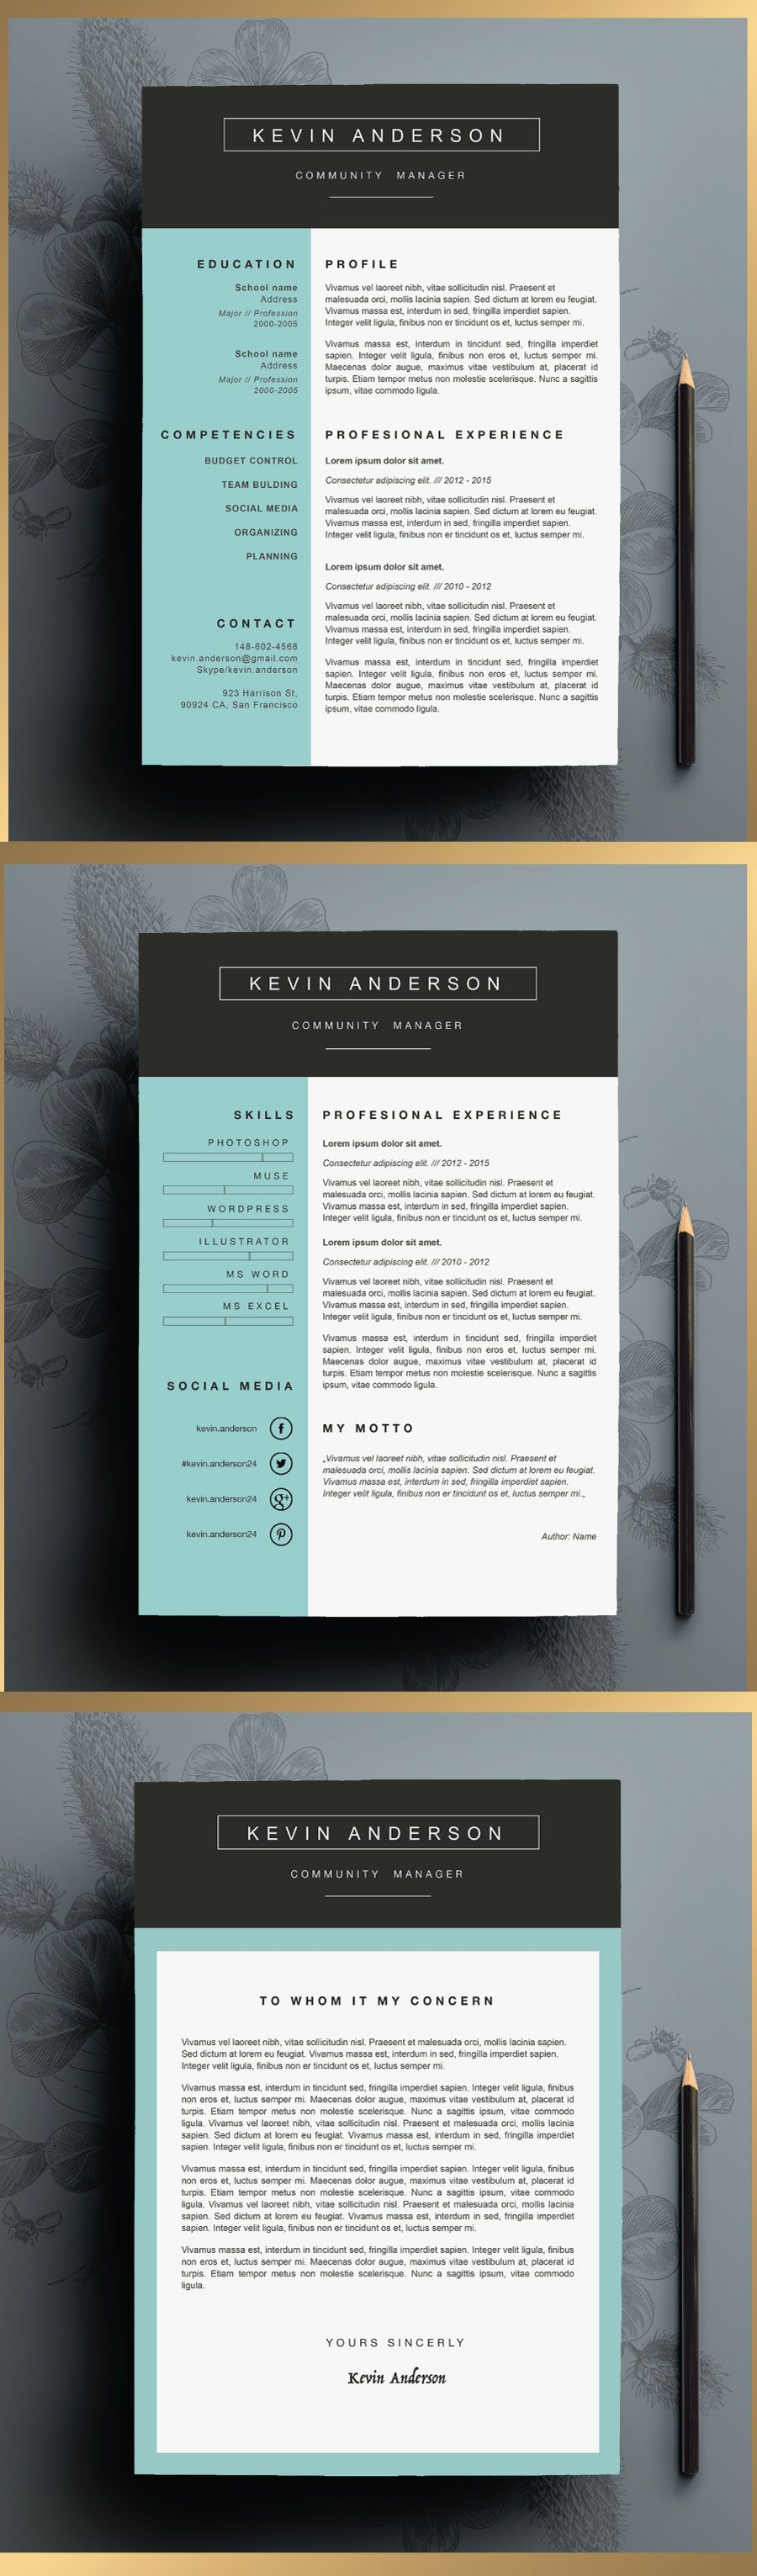 Stylish Resume Template Editable In Ms Word By Cvdesign You Can